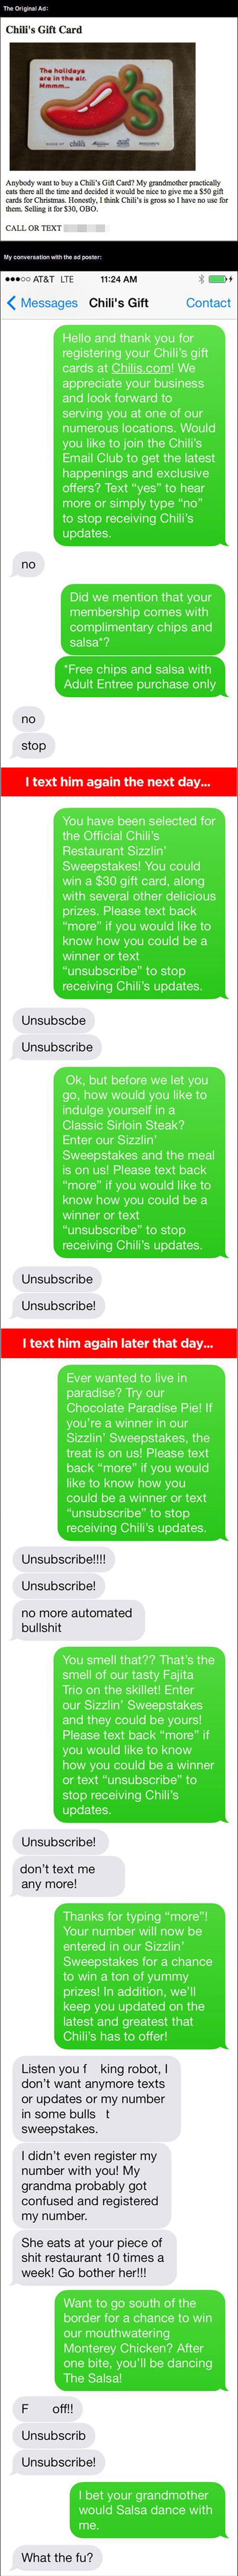 funny-Chili-gift-card-texting-phone-grandmother 1